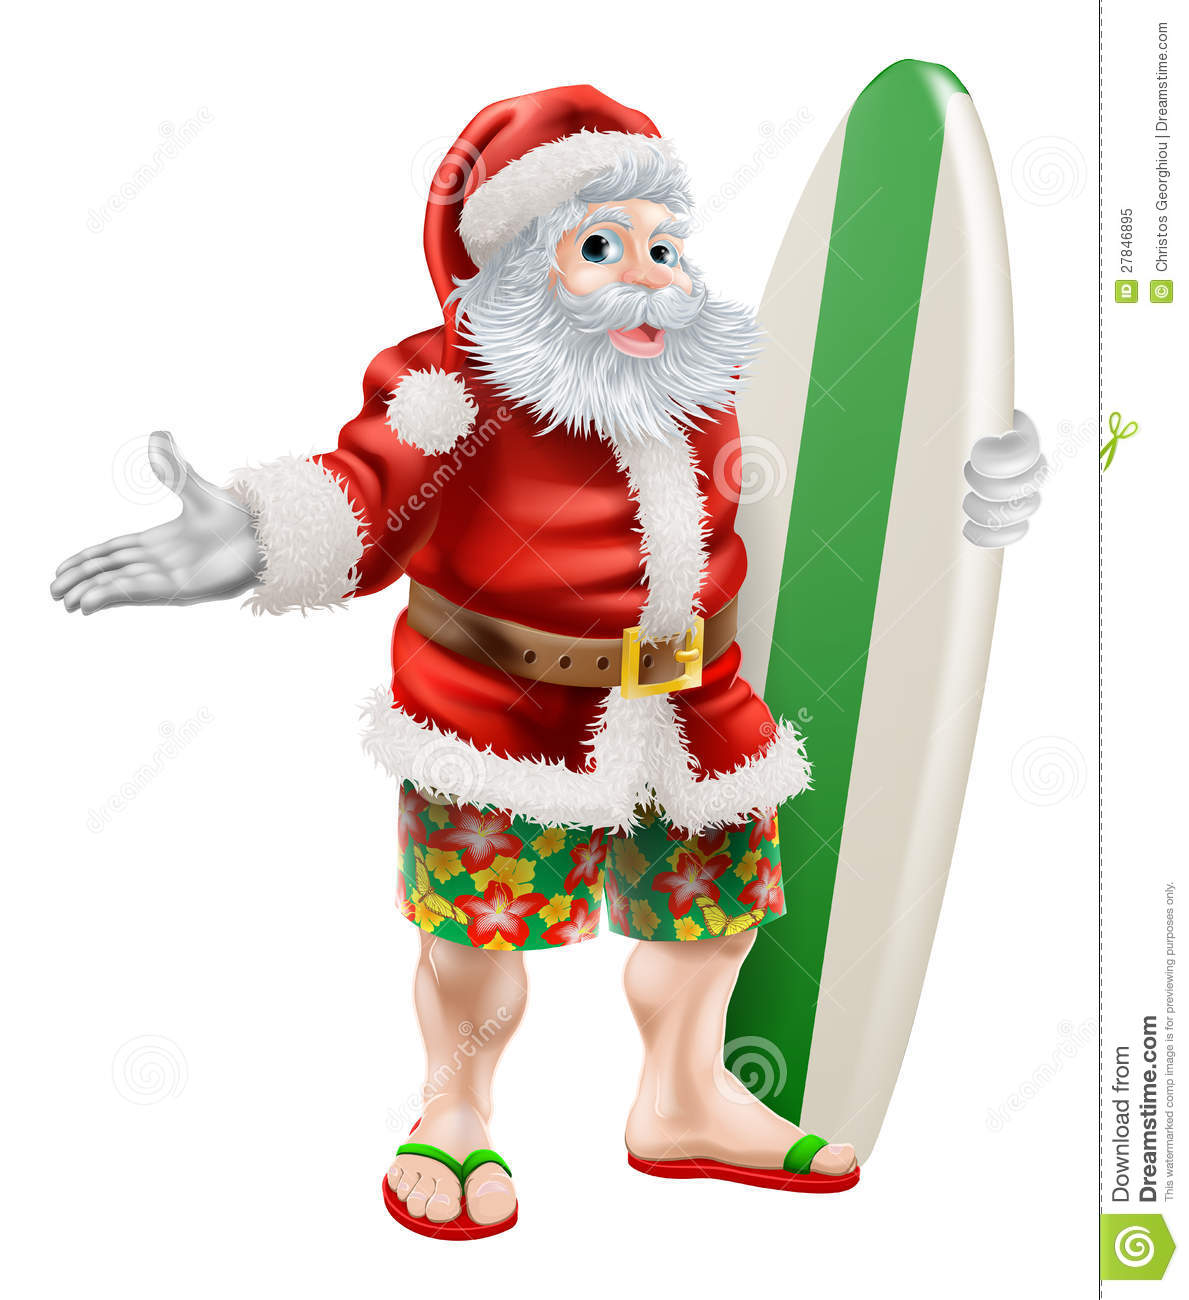 surf santa stock vector illustration of board shorts 27846895 rh dreamstime com Santa Face Clip Art Santa Face Clip Art